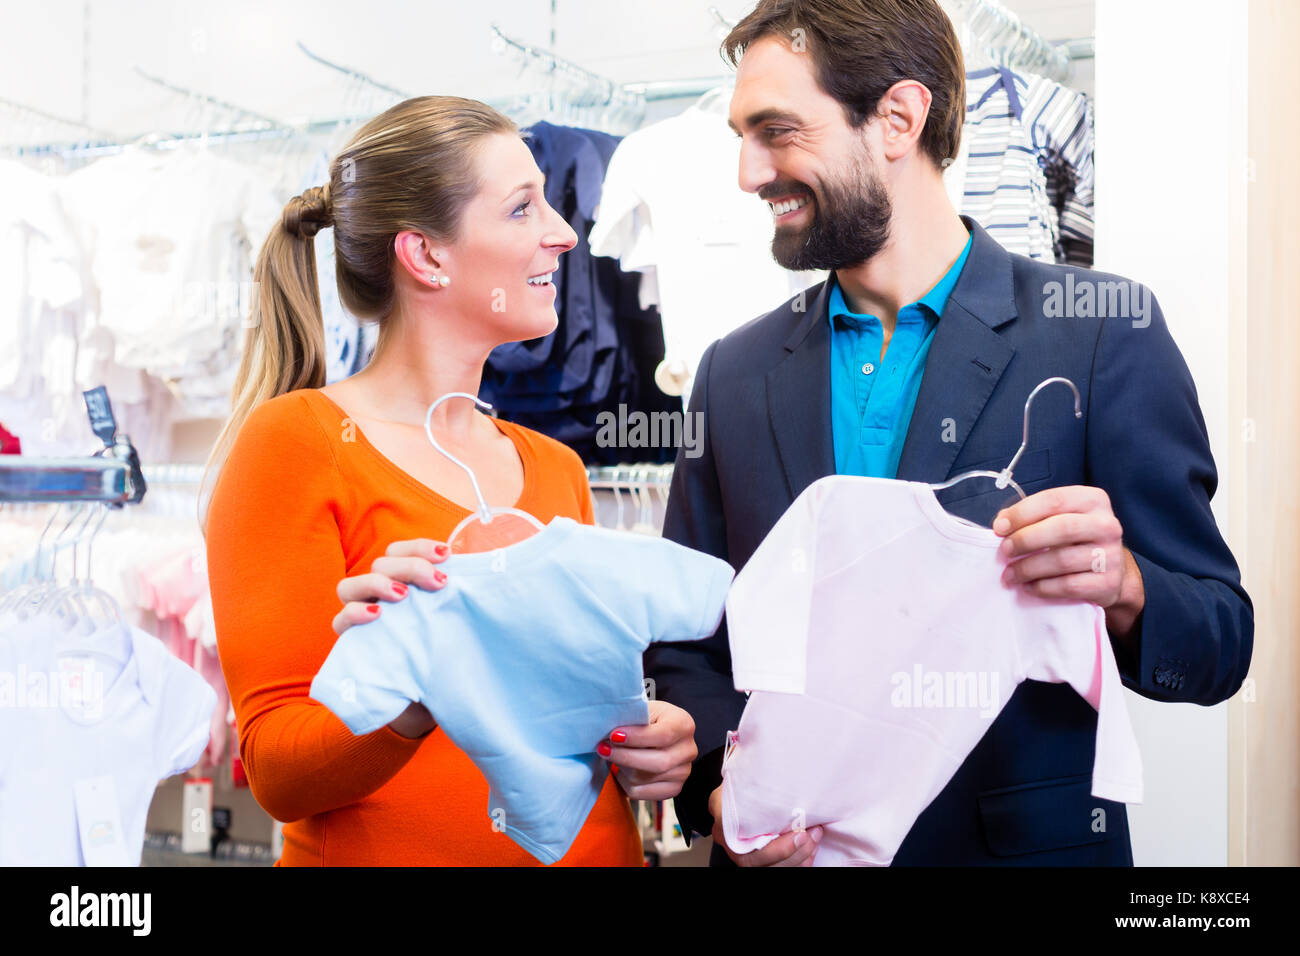 Twins Baby Stock Photos & Twins Baby Stock Images - Alamy